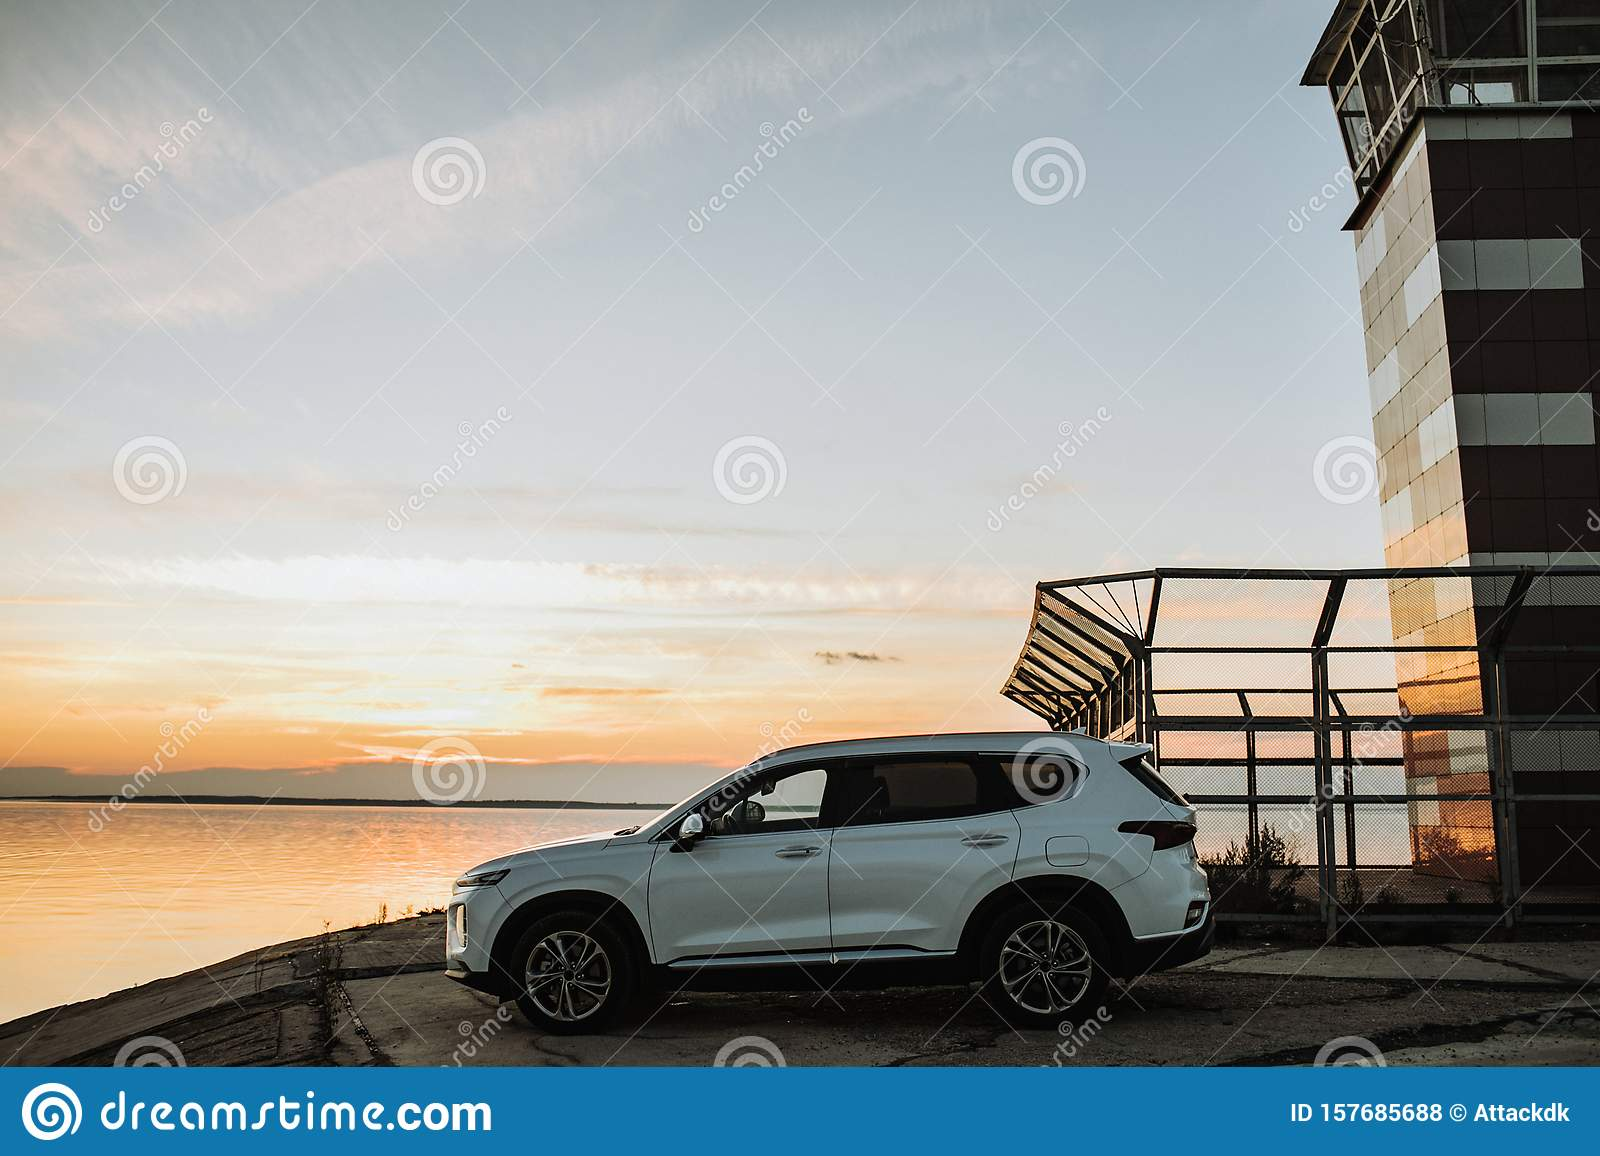 White compact SUV car with sport and modern design parked on concrete road by the sea near the beach at sunset